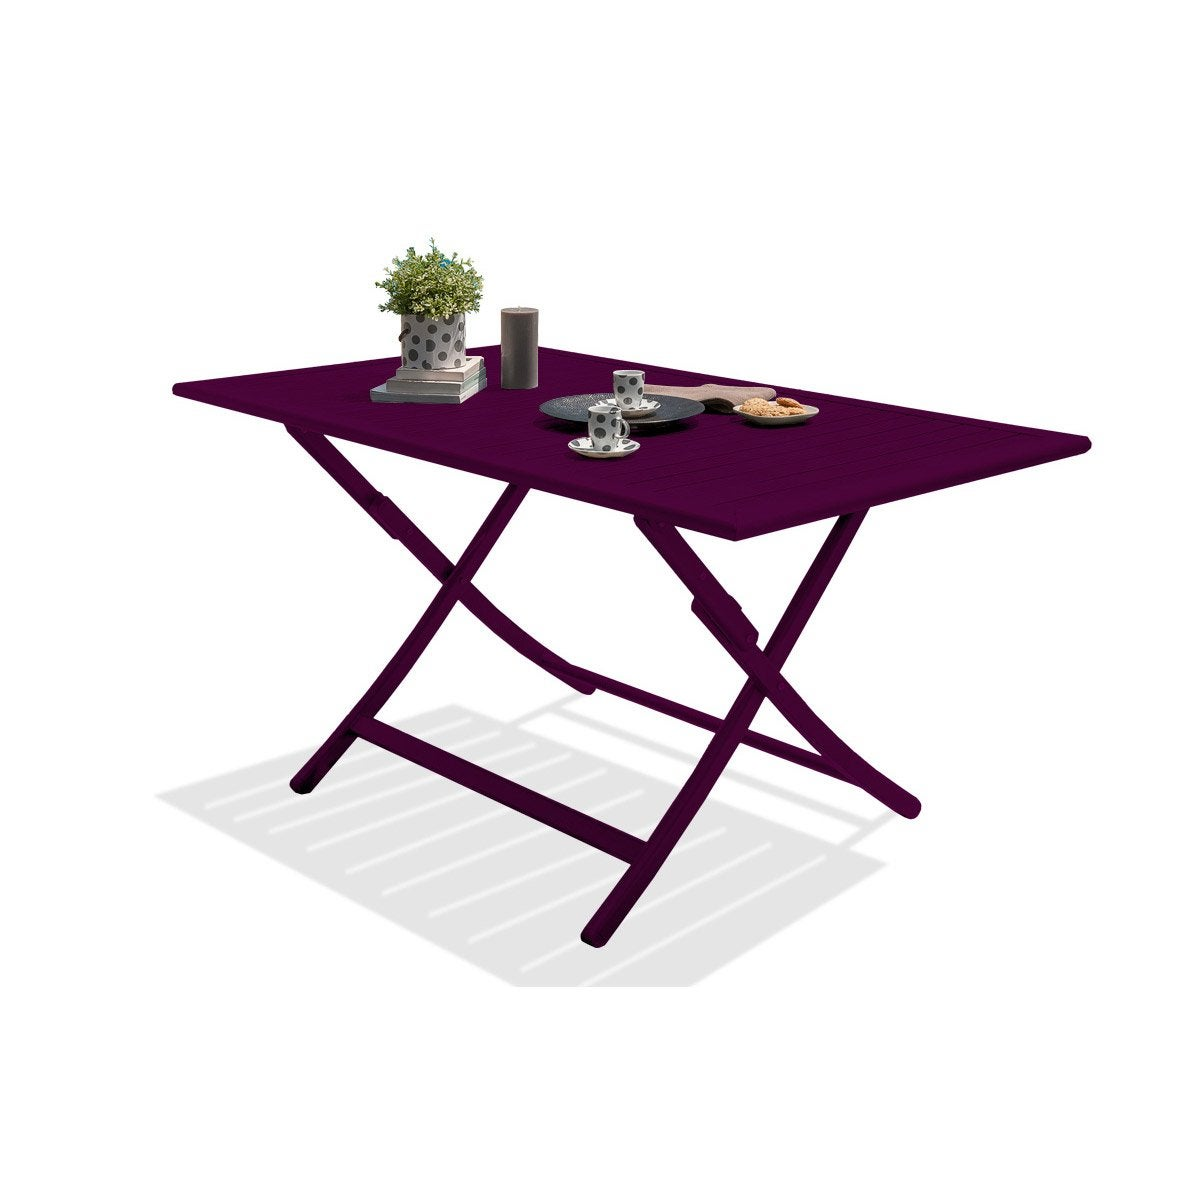 Table Ronde Salon De Jardin Best Of Table De Jardin De Repas Marius Rectangulaire Aubergine 4 6 Of 40 Best Of Table Ronde Salon De Jardin